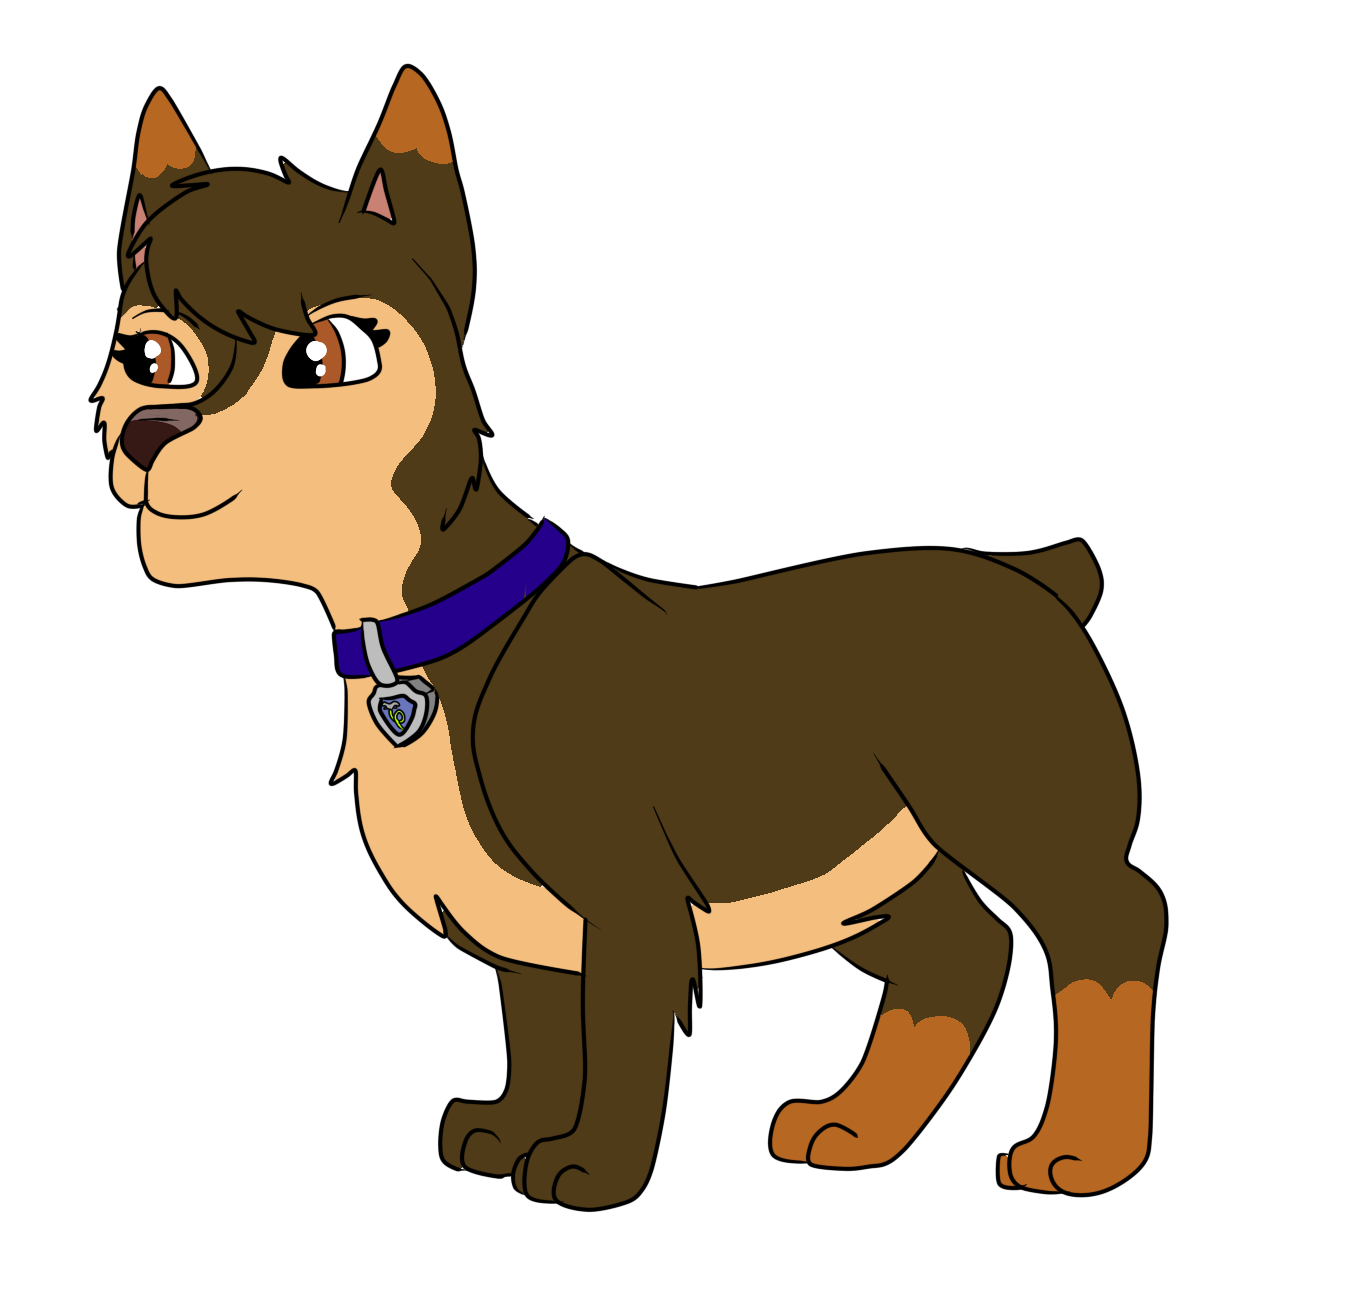 Sora chasexskye pup paw. Marbles clipart dog ball